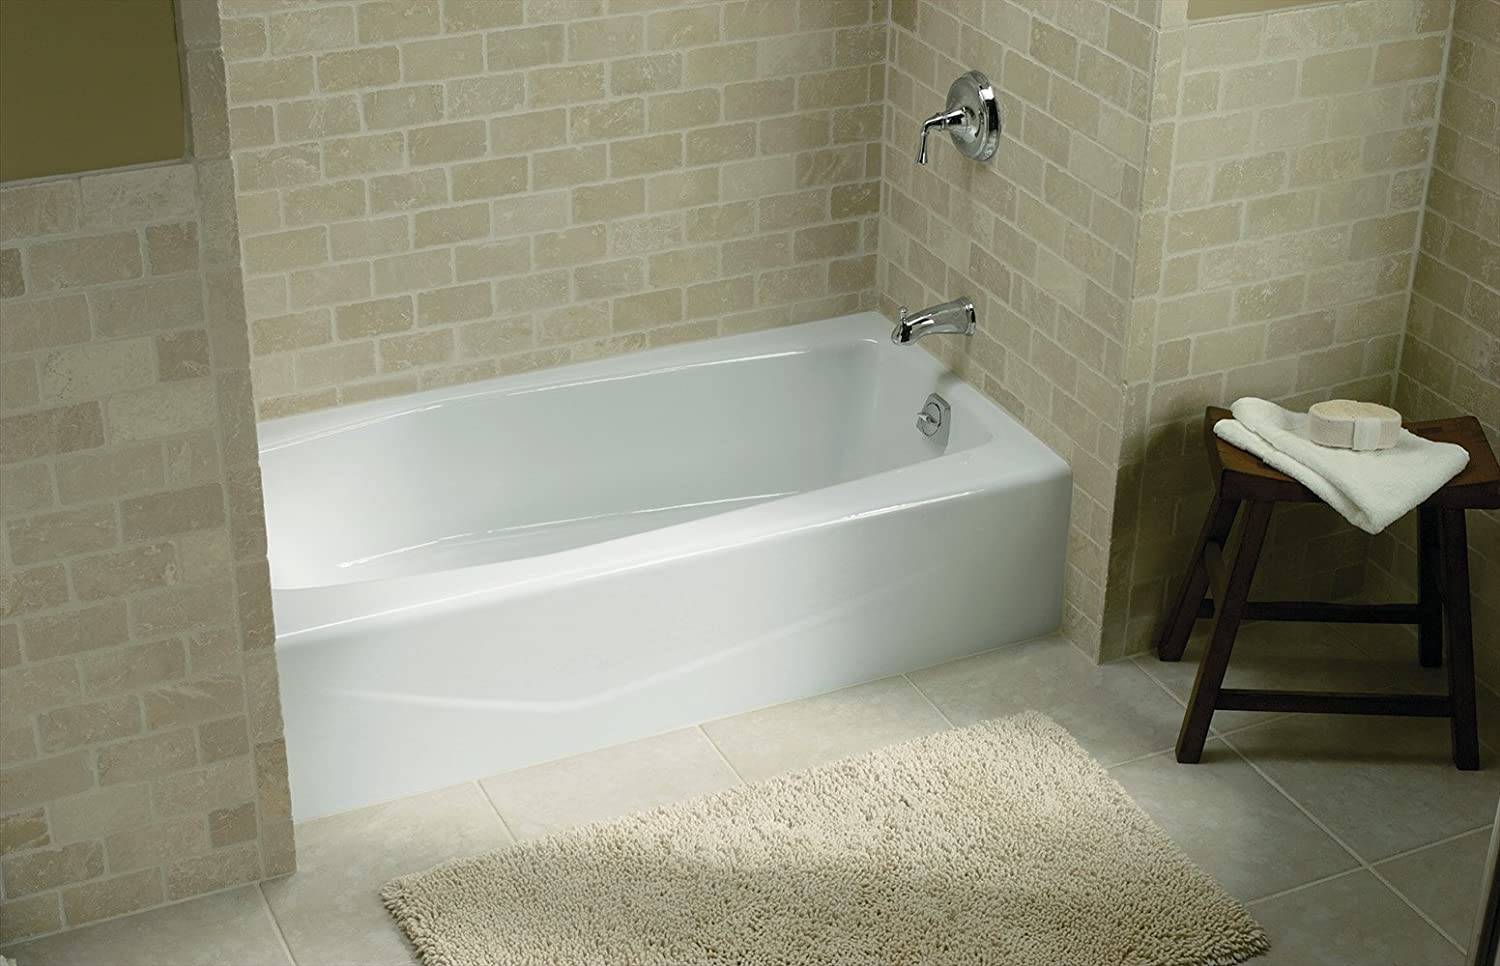 KOHLER K-716-0 Villager Bath with Right-Hand Drain, White ...